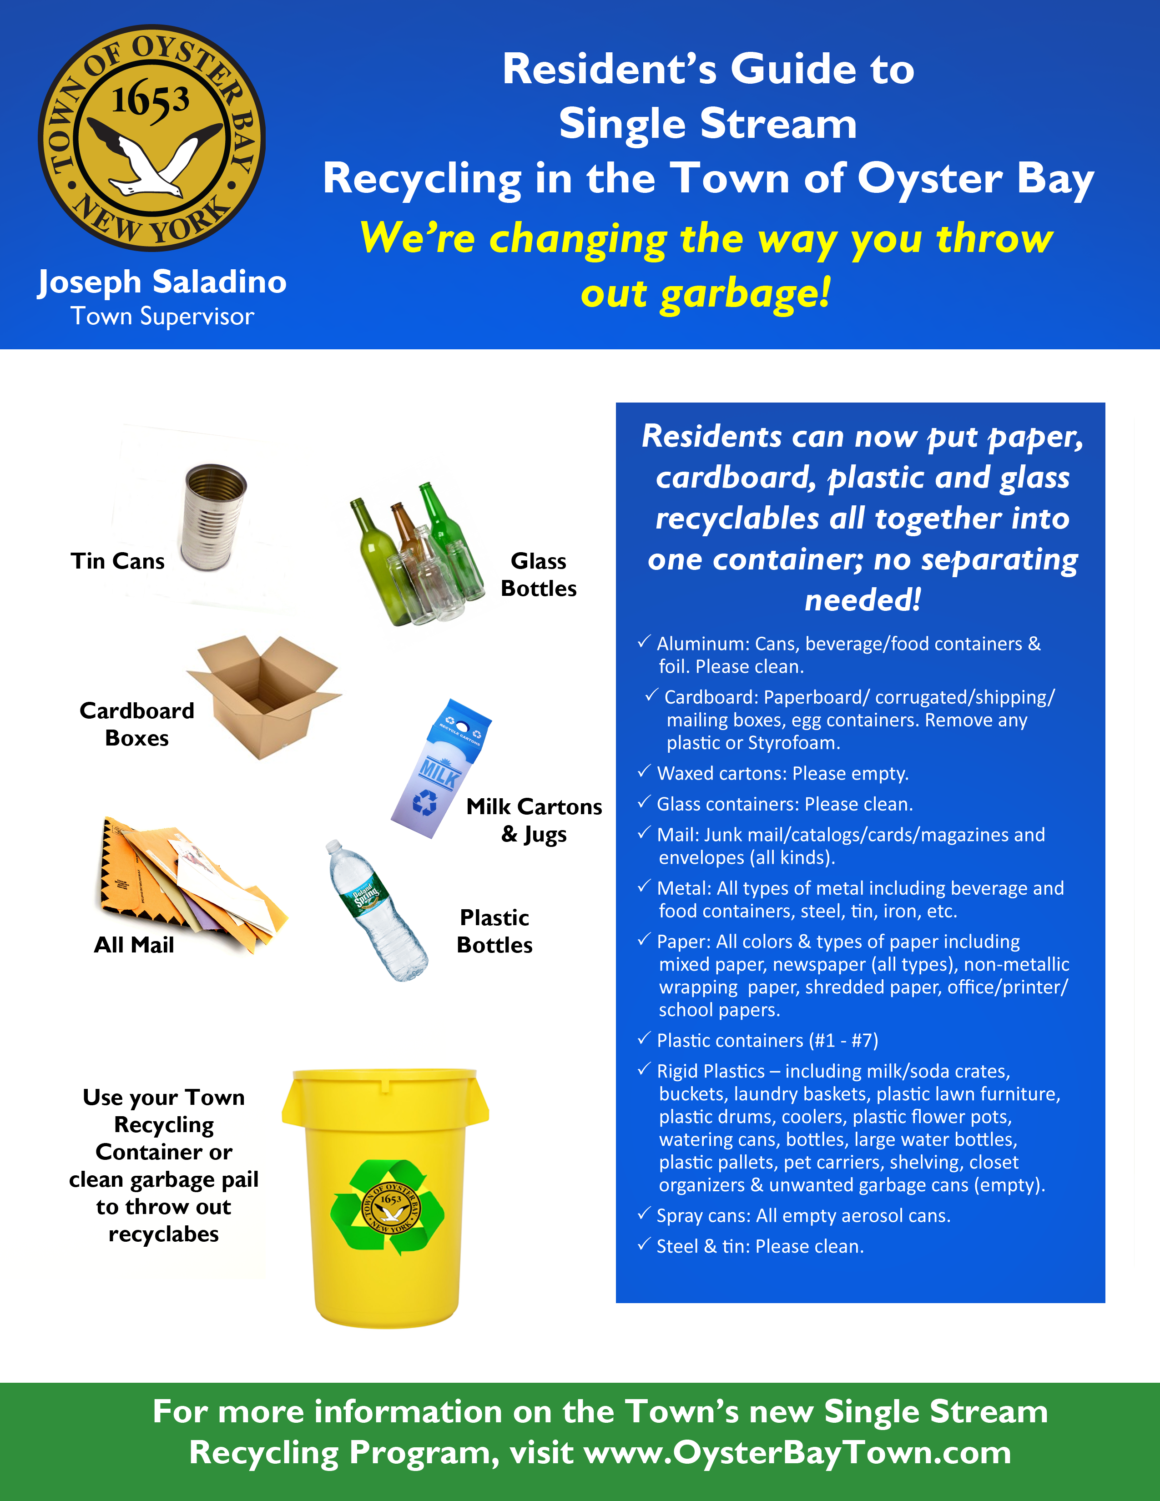 Single Stream Recycling Initiative Gets Underway October 23